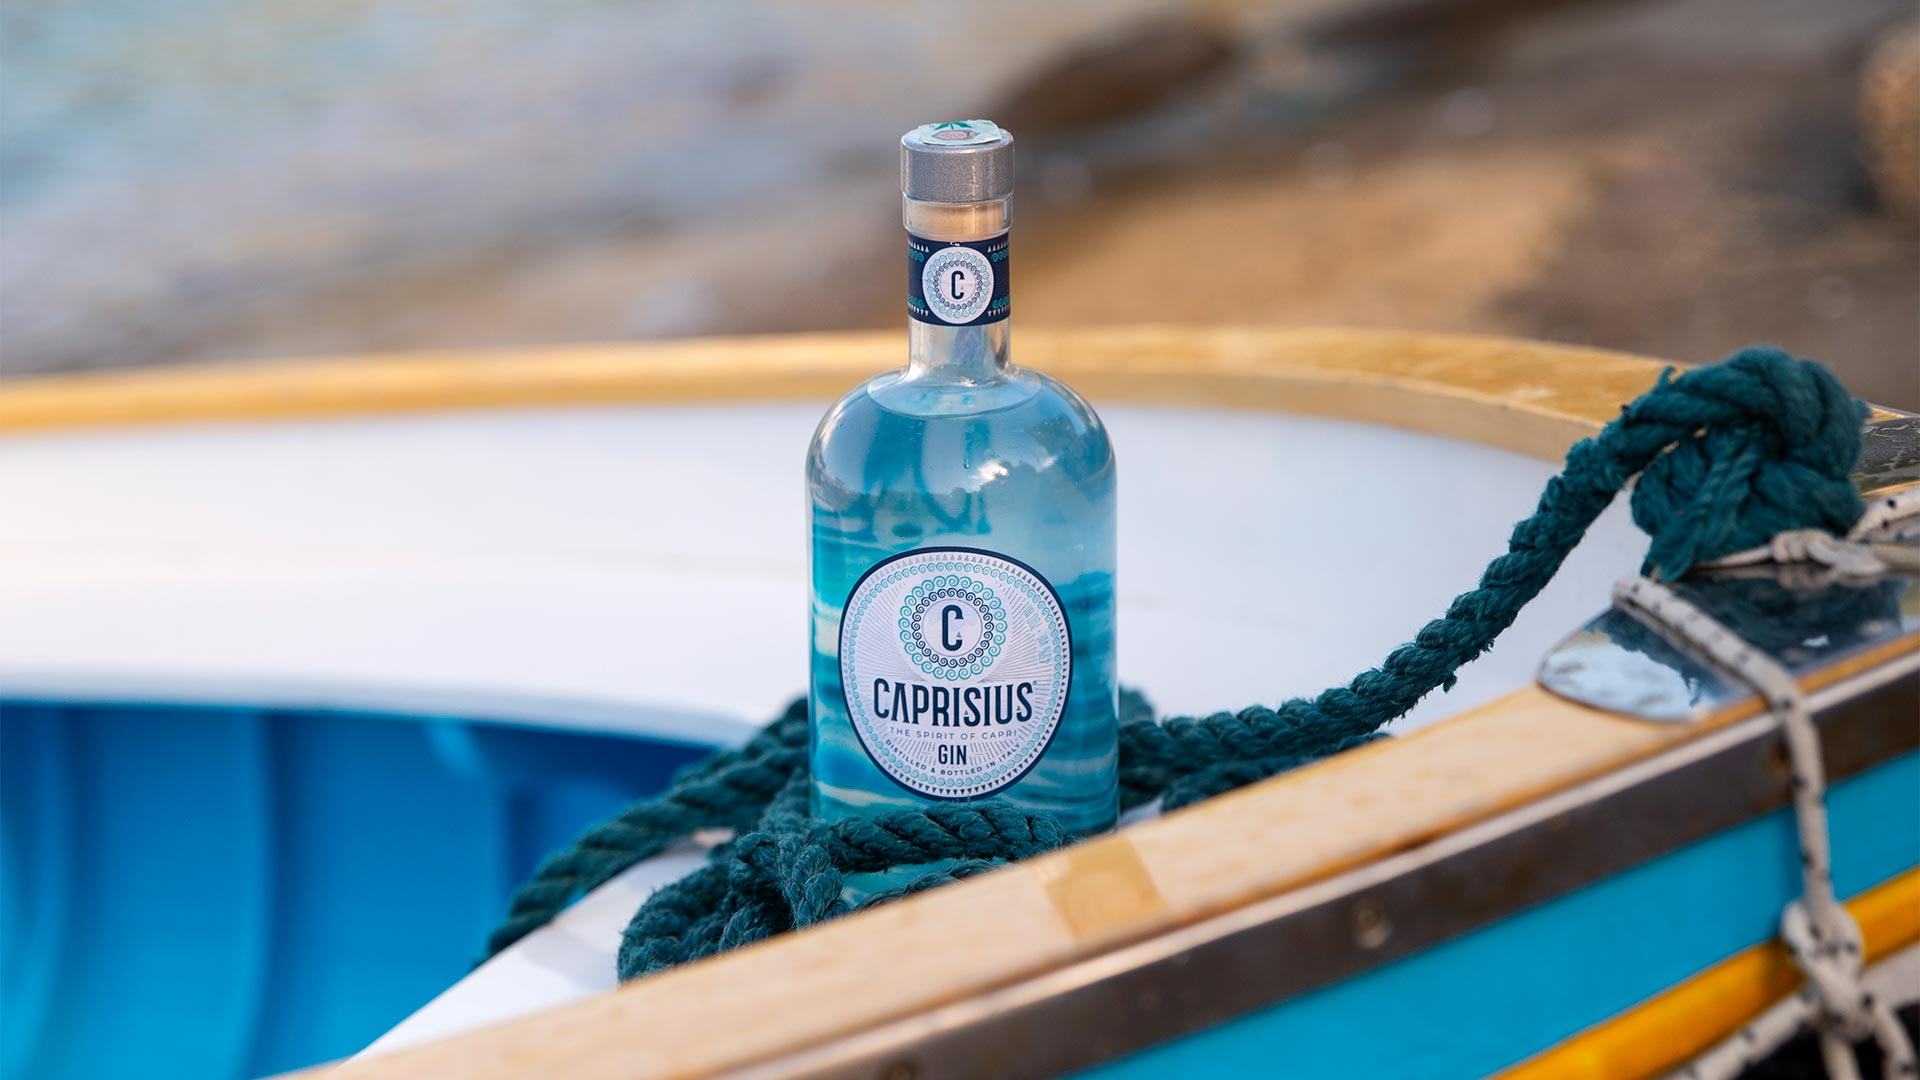 CaprisiusGin1920 3 - Branding & Label Design Caprisius Gin